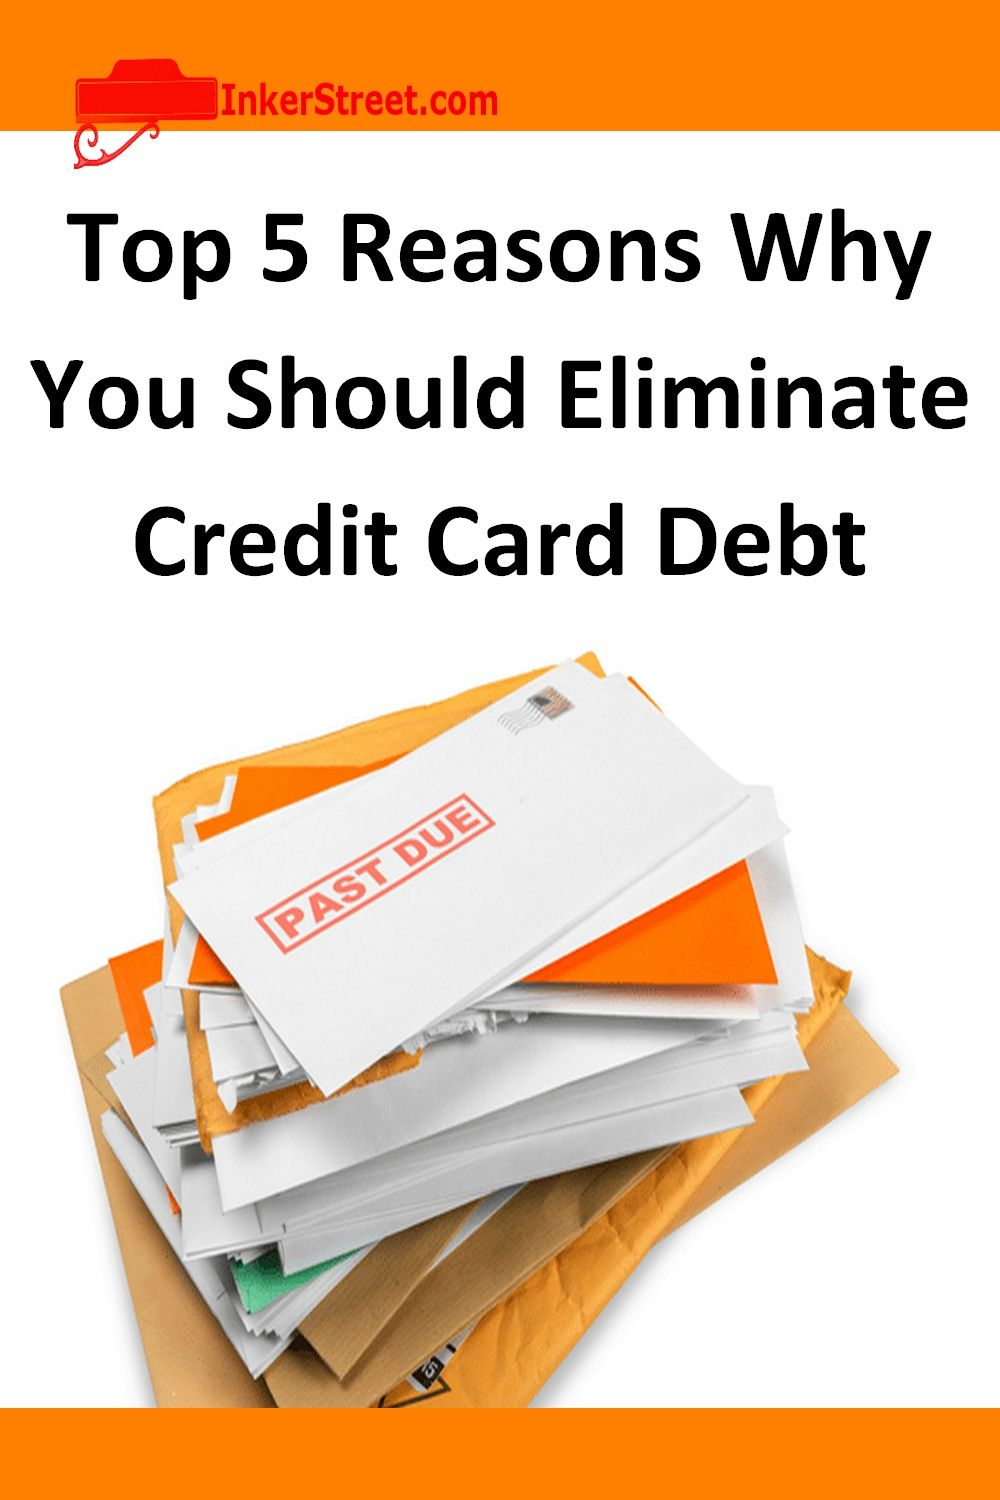 Paying just the minimum payment will keep you tangled in credit's web for years and years to come. Do you know how long it takes to pay off your credit card if you pay only the minimal amount? #debtrelief #financialfreedom #creditcards